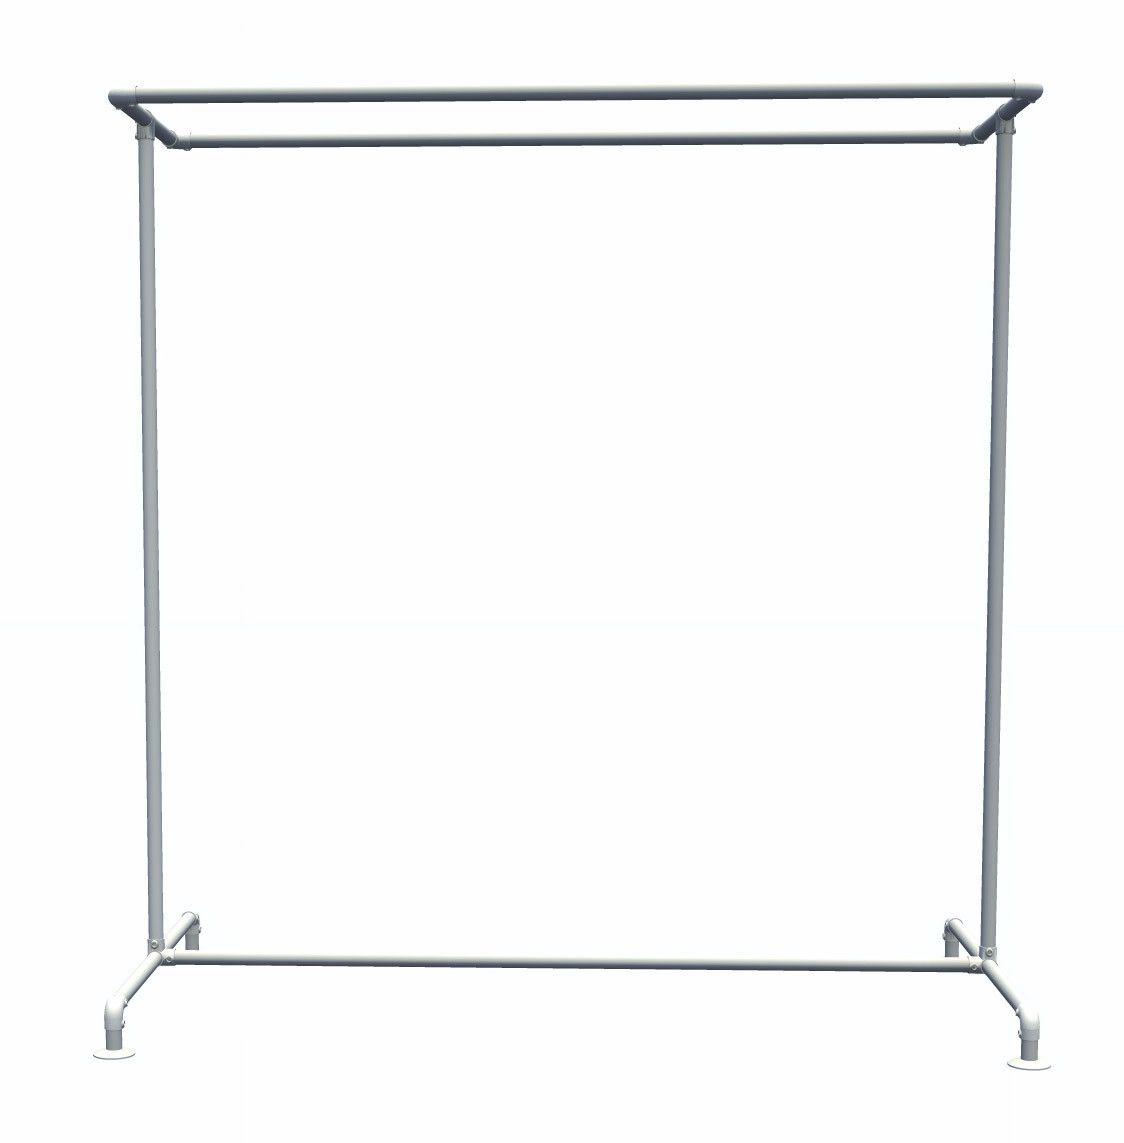 Pipe clothing rack free standing double rail kee klamp